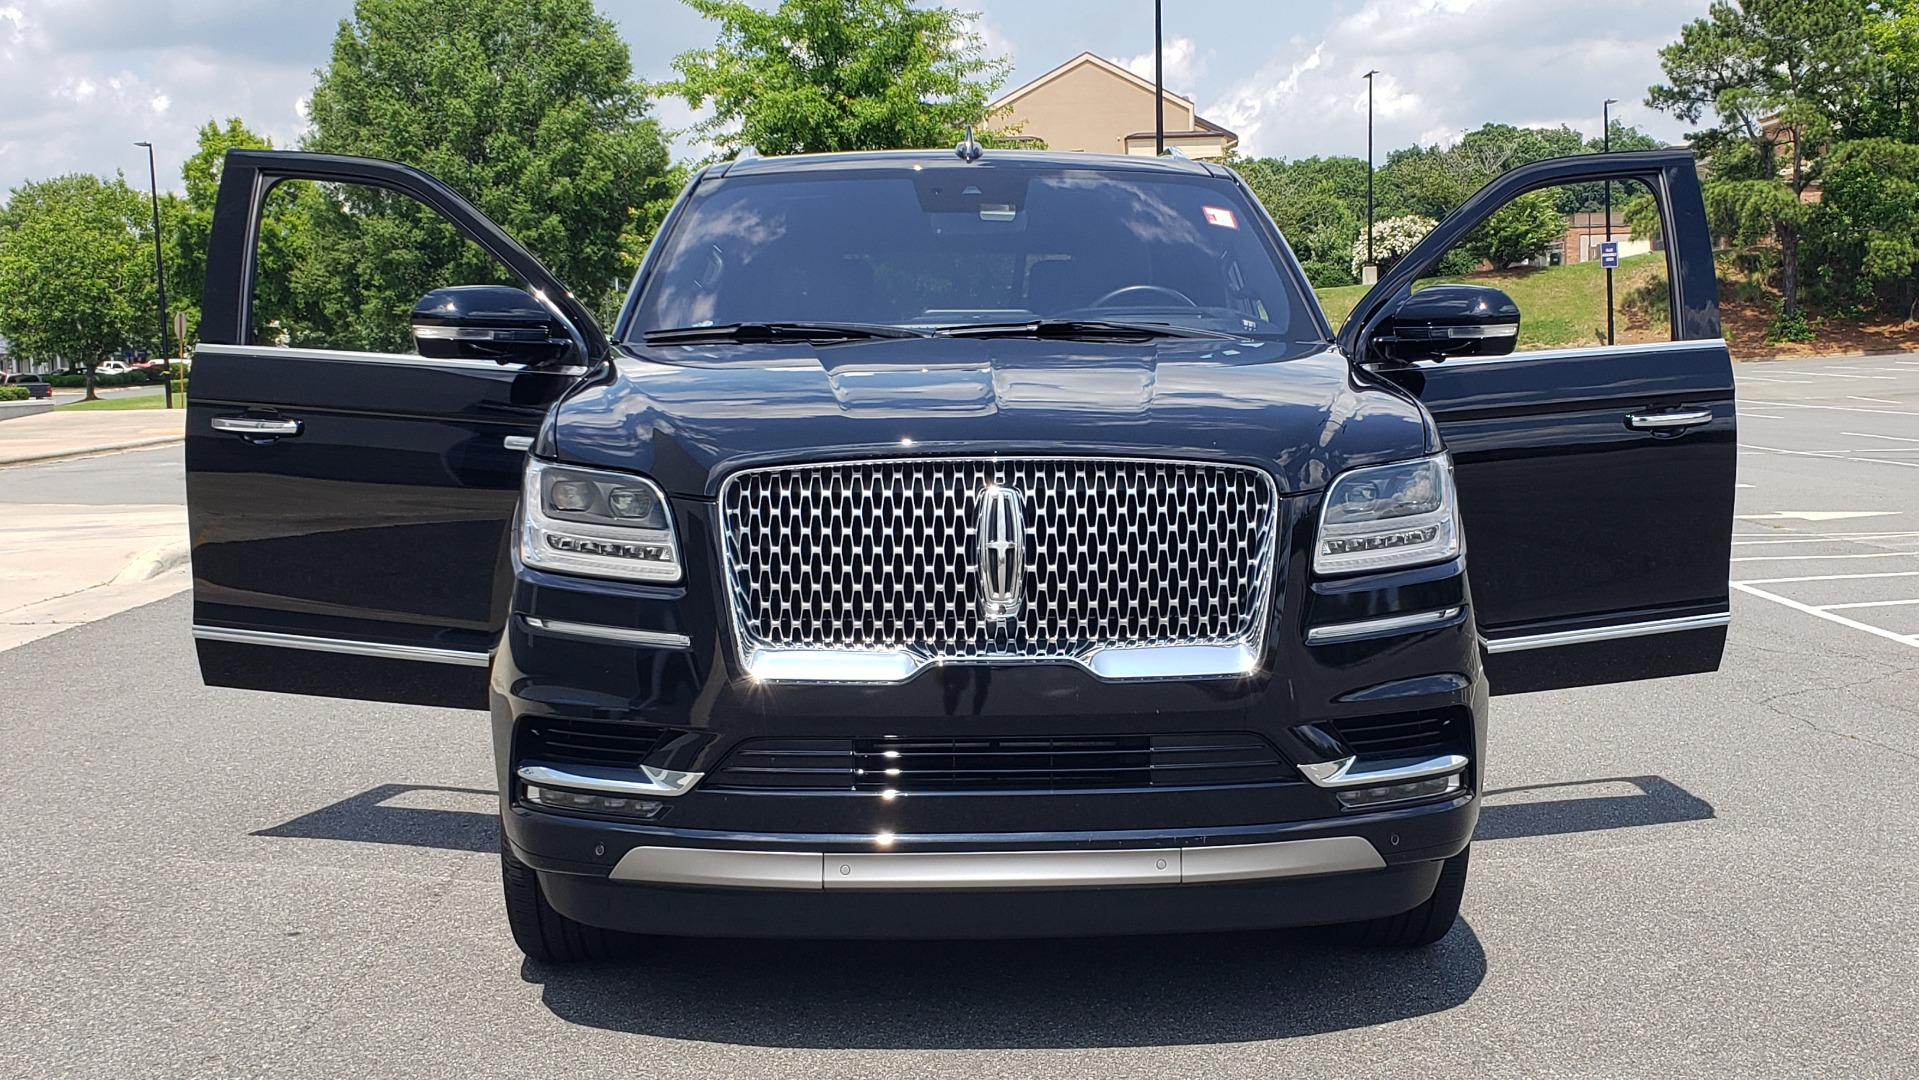 Used 2019 Lincoln NAVIGATOR RESERVE 4X4 / NAV / PANO-ROOF / REVEL ULTIMA AUDIO / 3-ROW / REARVIEW for sale $74,795 at Formula Imports in Charlotte NC 28227 27